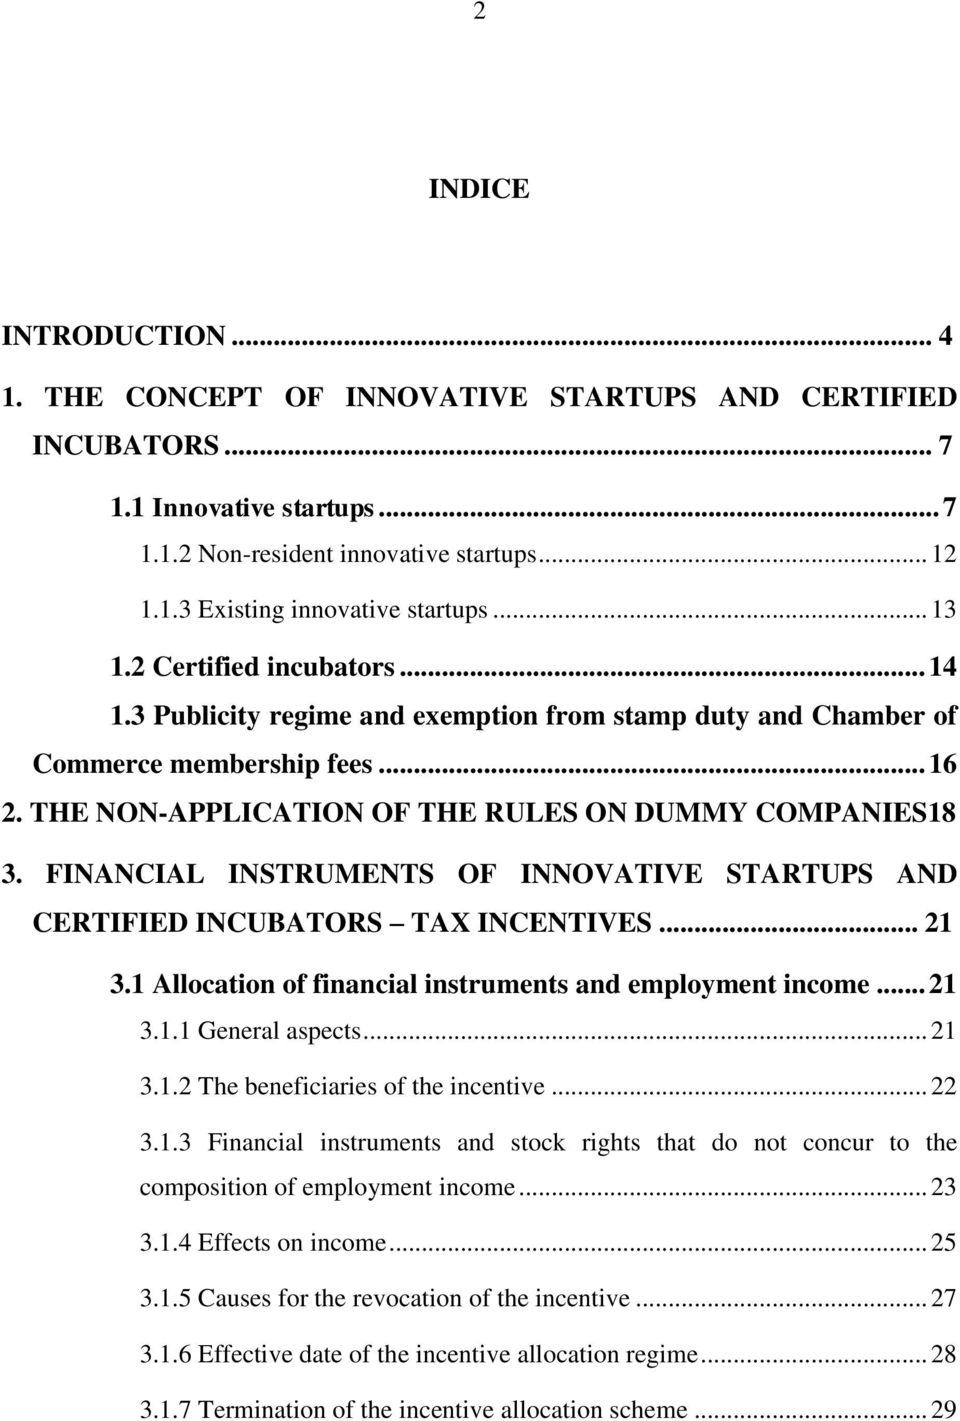 FINANCIAL INSTRUMENTS OF INNOVATIVE STARTUPS AND CERTIFIED INCUBATORS TAX INCENTIVES... 21 3.1 Allocation of financial instruments and employment income... 21 3.1.1 General aspects... 21 3.1.2 The beneficiaries of the incentive.